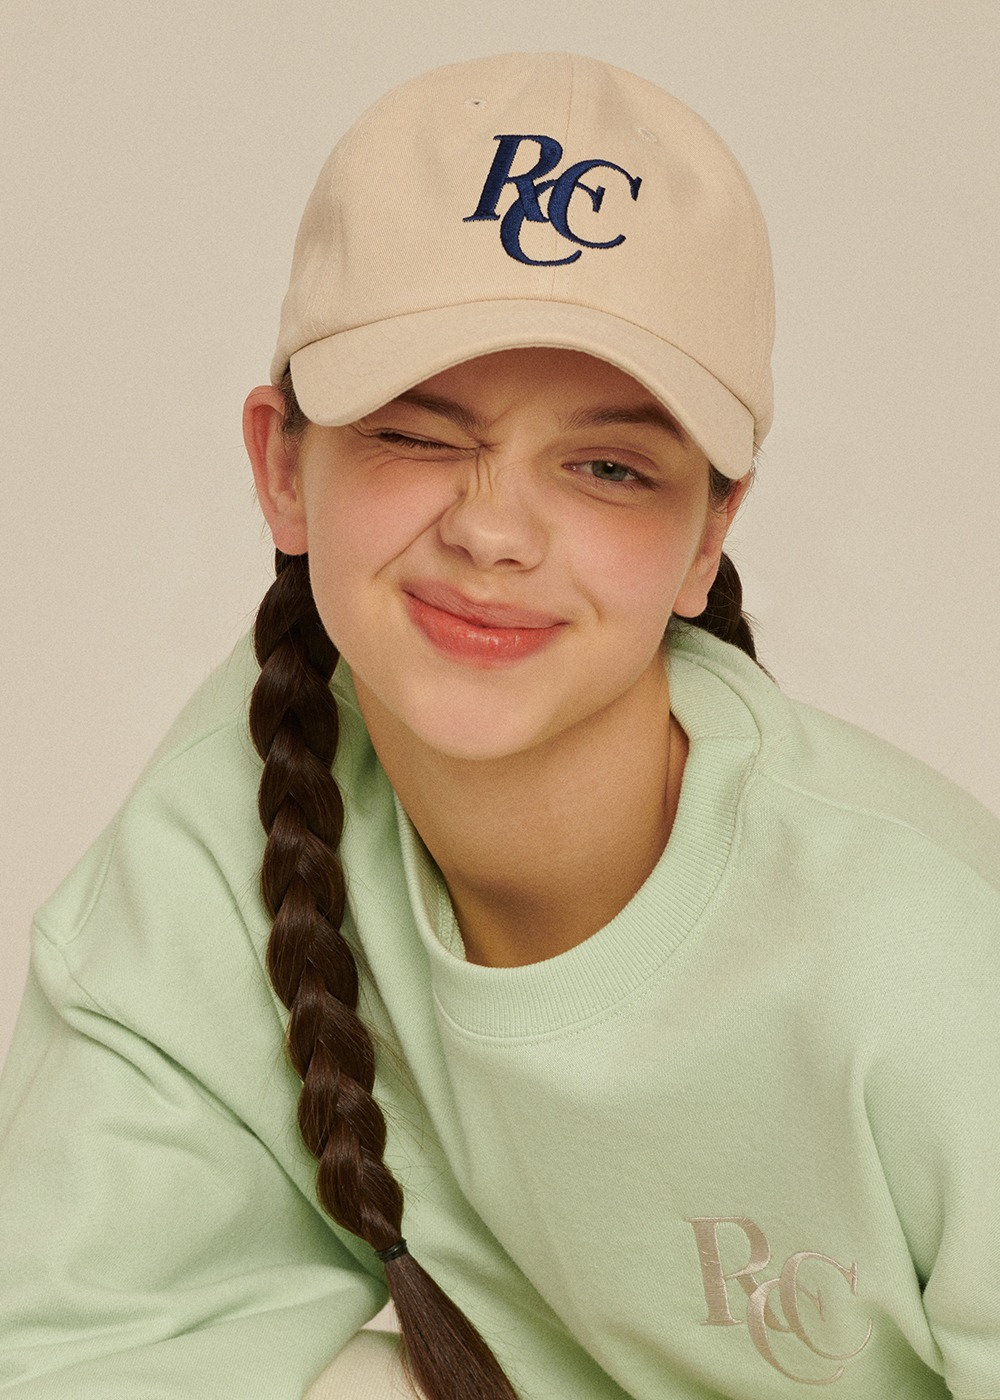 RCC Logo ball cap [CREAM BEIGE]RCC Logo ball cap [CREAM BEIGE]자체브랜드